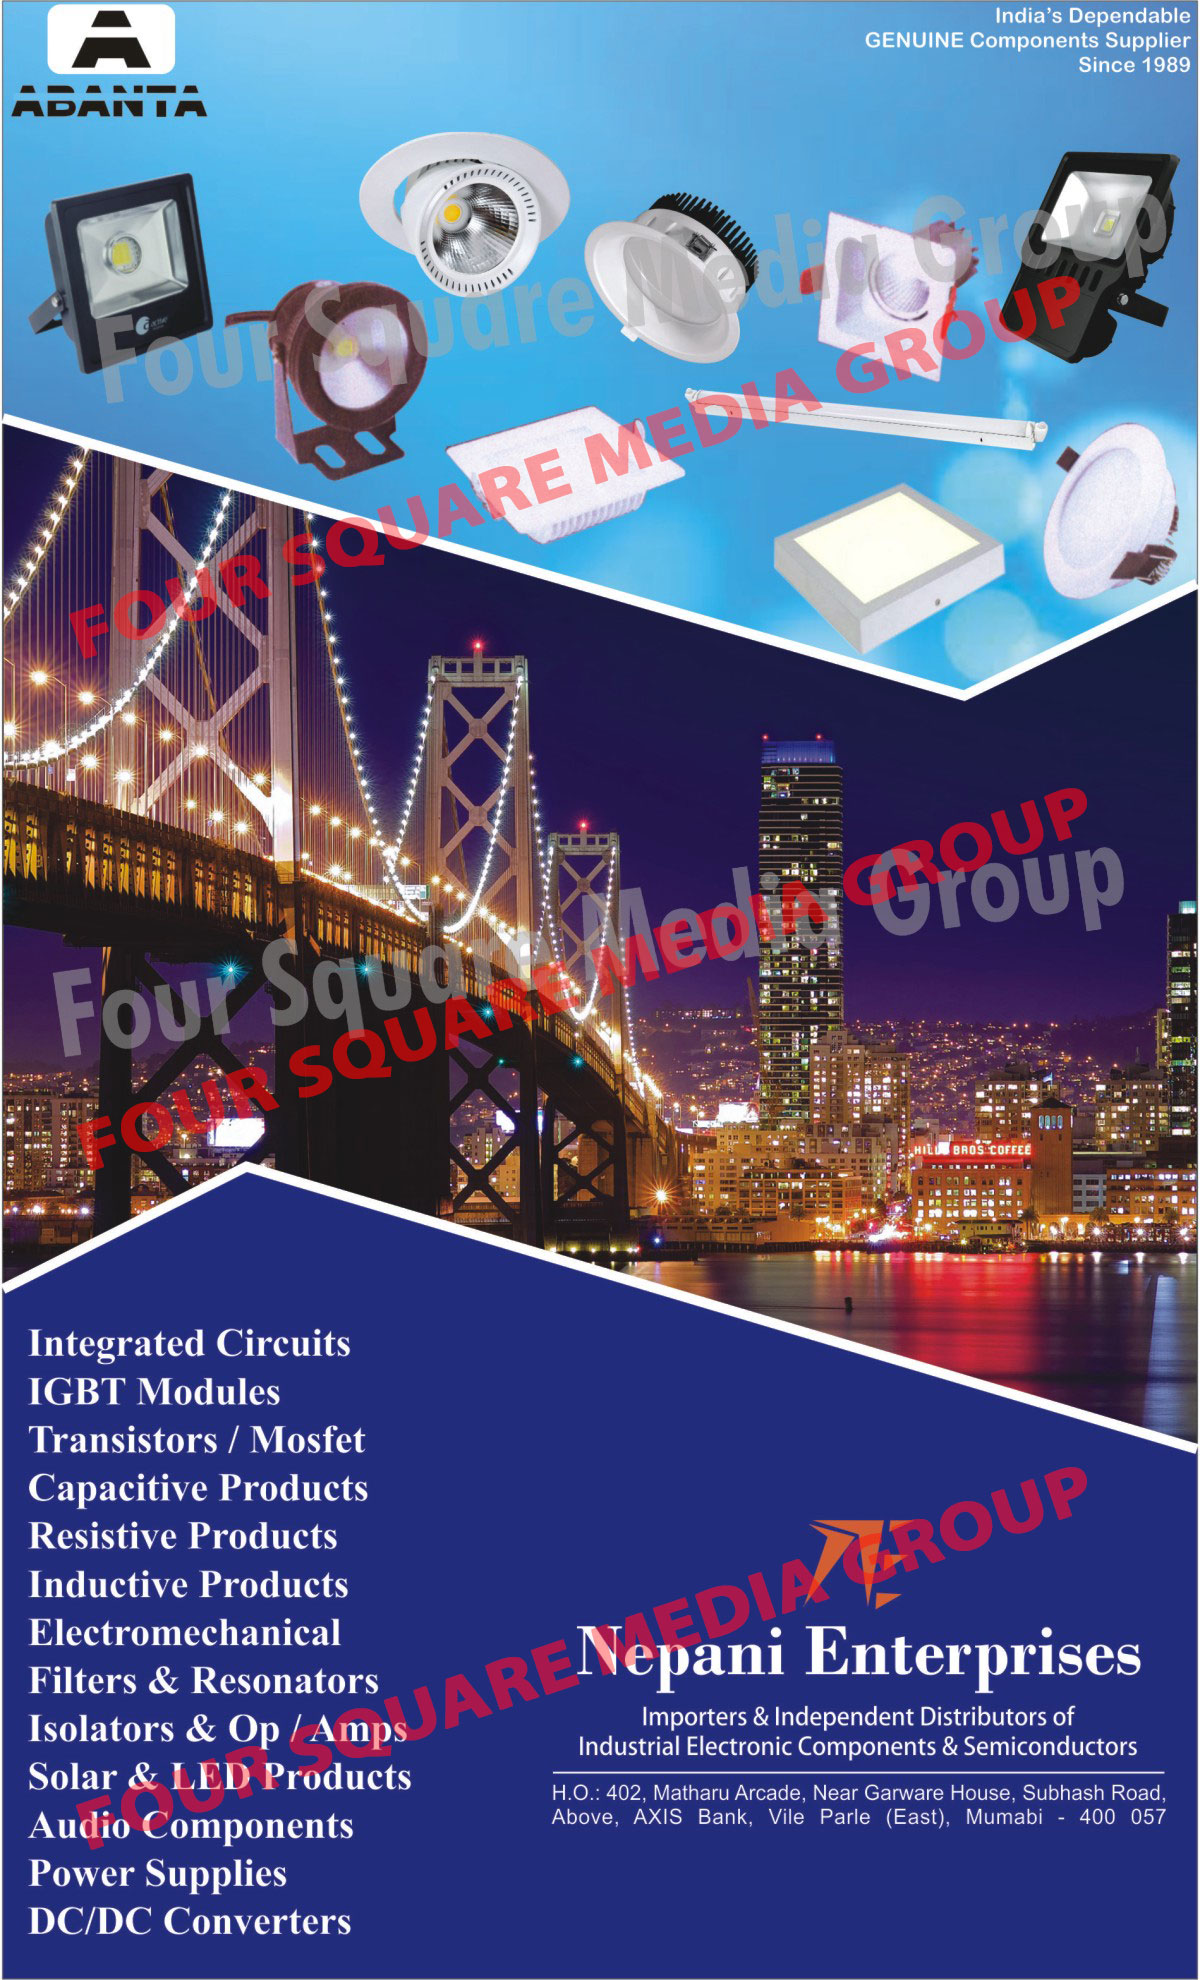 Industrial Electronic Components, Semiconductors, Integrated Circuits, IGBT Modules, Transistors, Mosfets, Capacitive Products, Resistive Products, Inductive Products, Electromechanical Products, Filters, Resonators, Isolators, OP, AMPS, Solar Products, LED Products, Audio Components, Power Supply, DC to DC Converters, Led Lights, Led Components